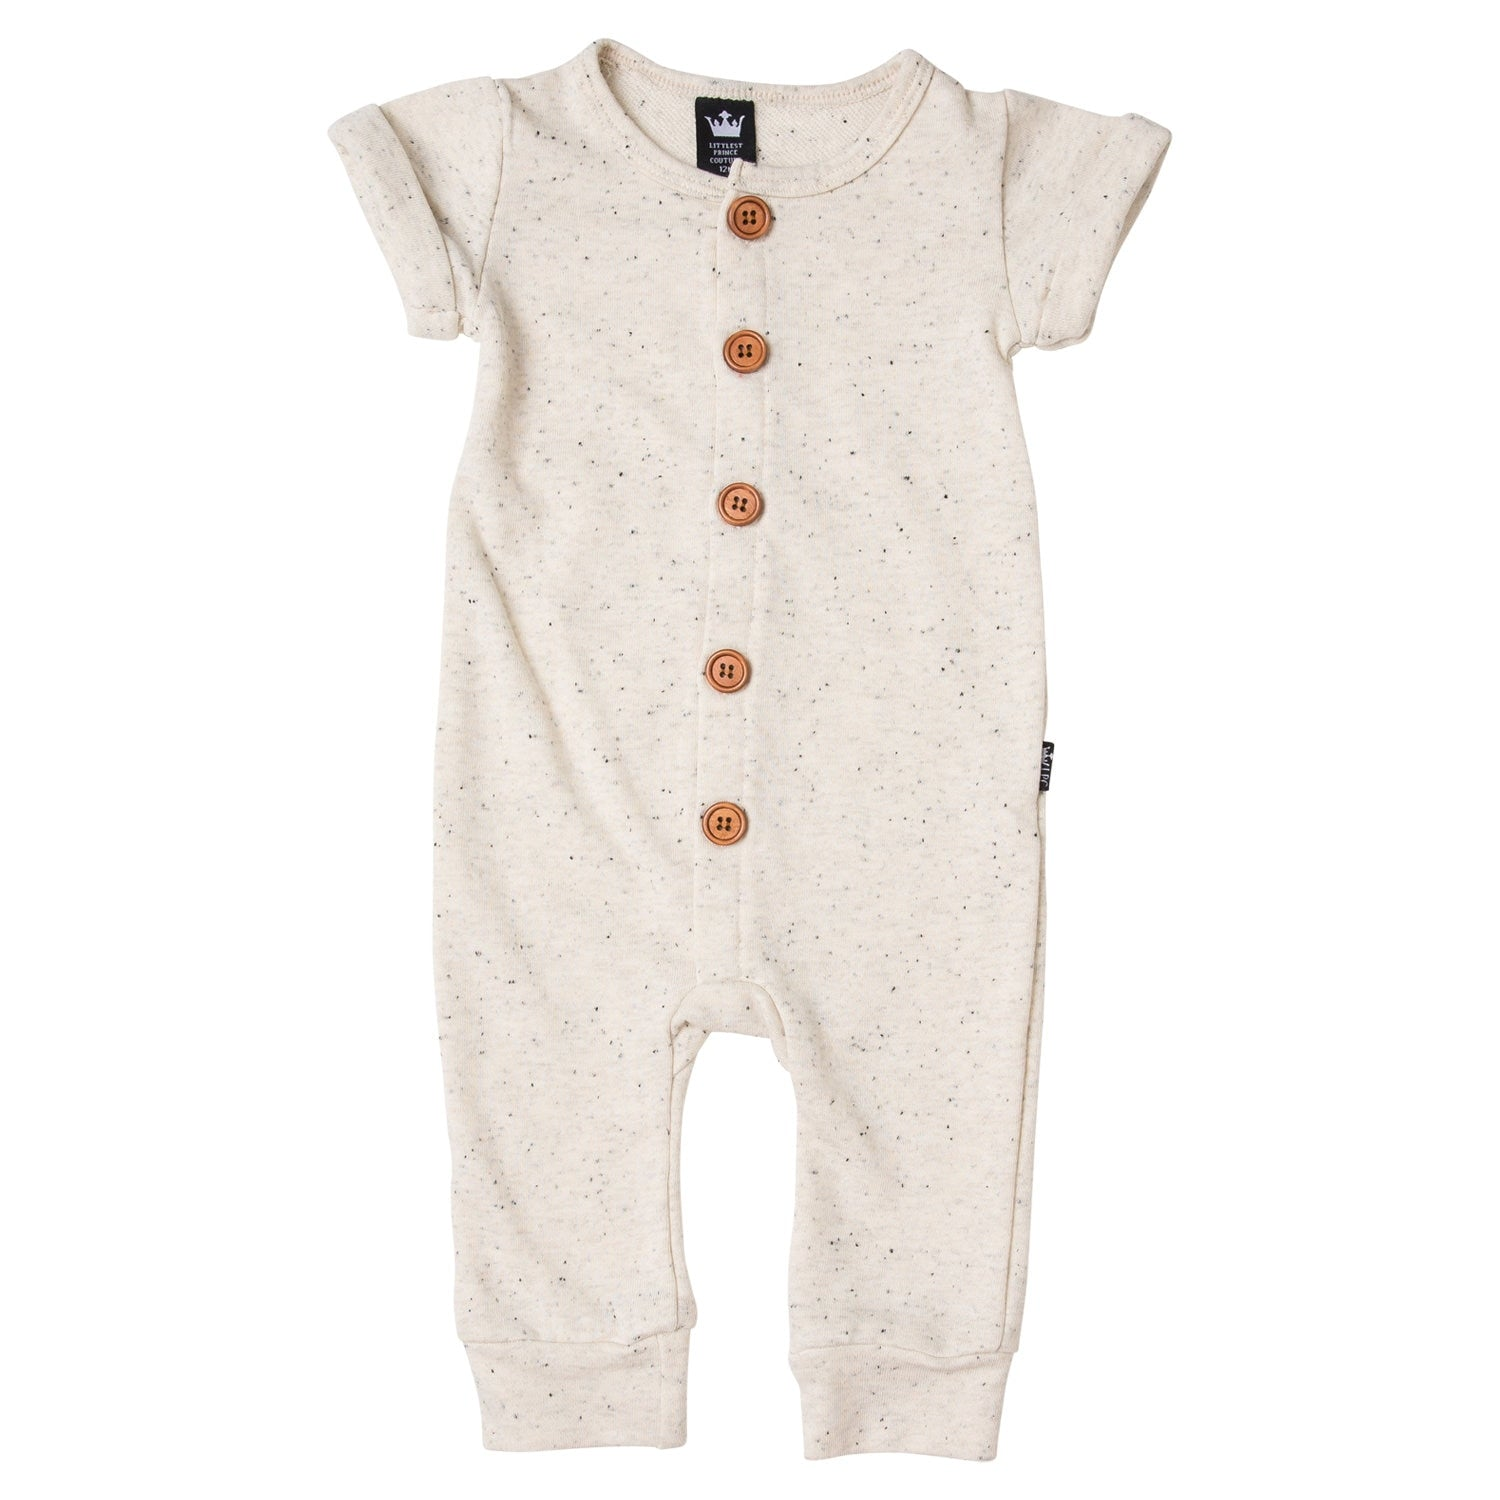 ftbur-crm-cream-french-terry-button-up-romper-front-product.jpg